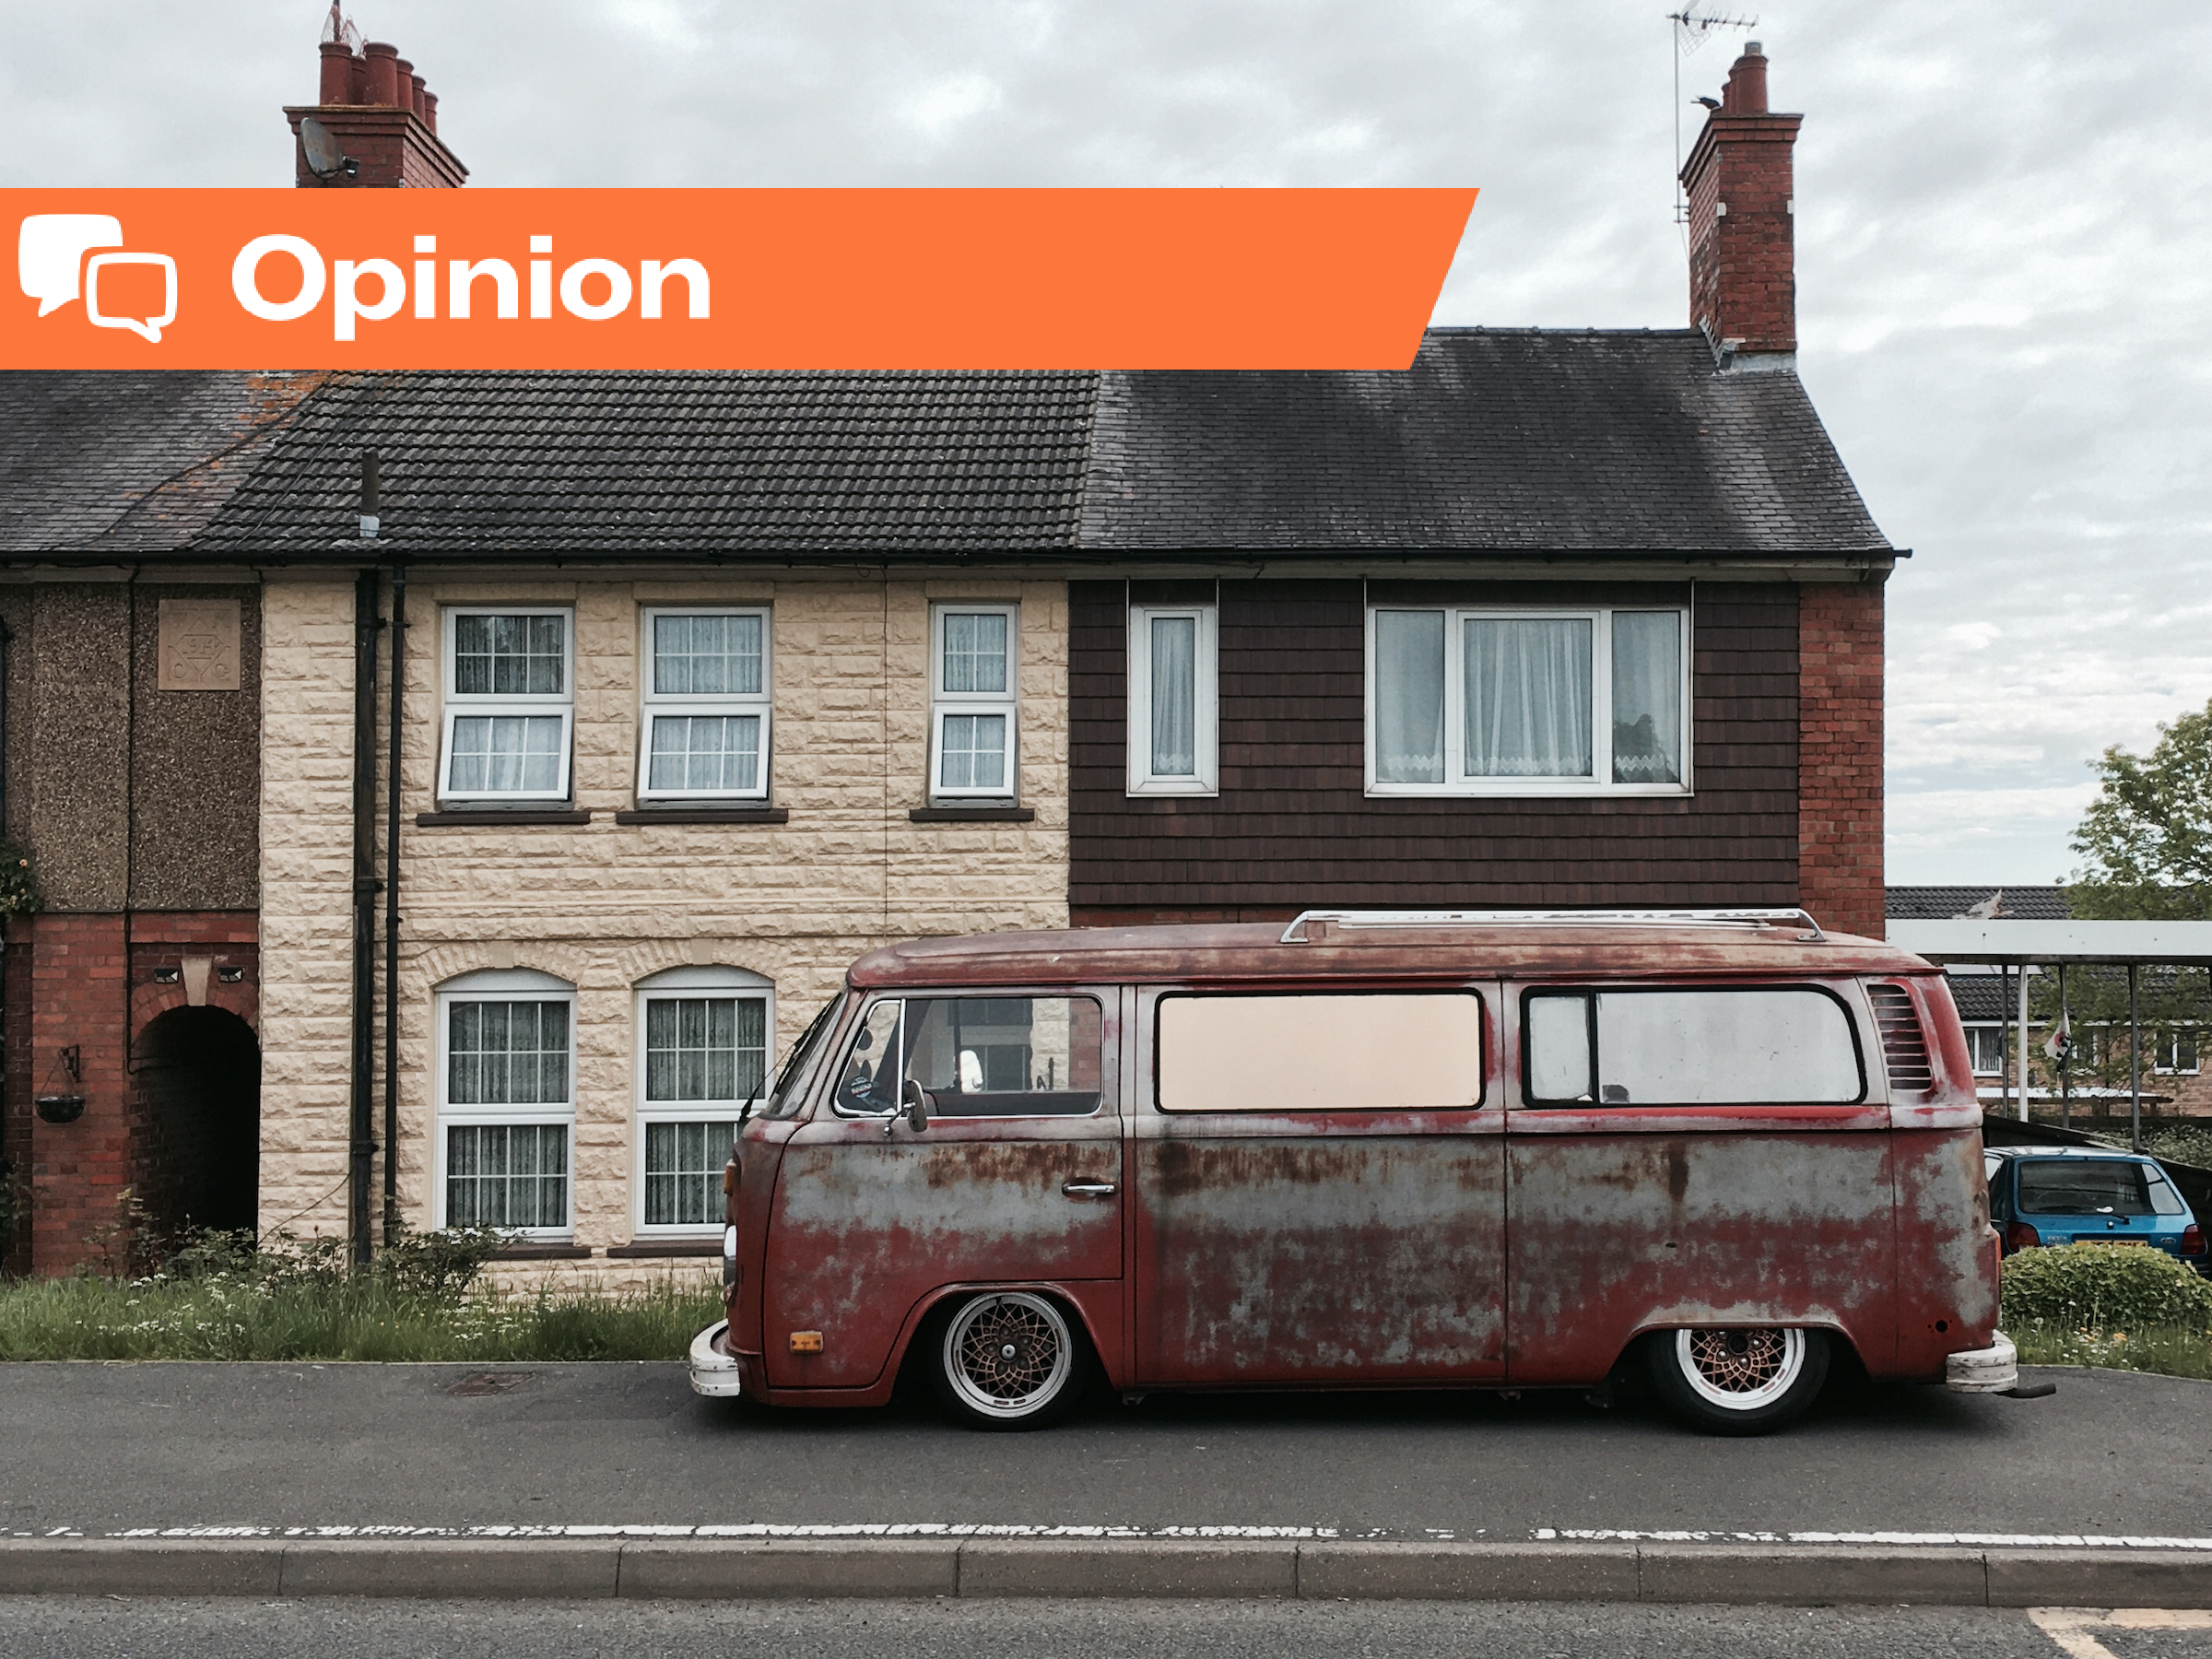 Opinion: Home or classic car? The housing crisis will affect classics, too